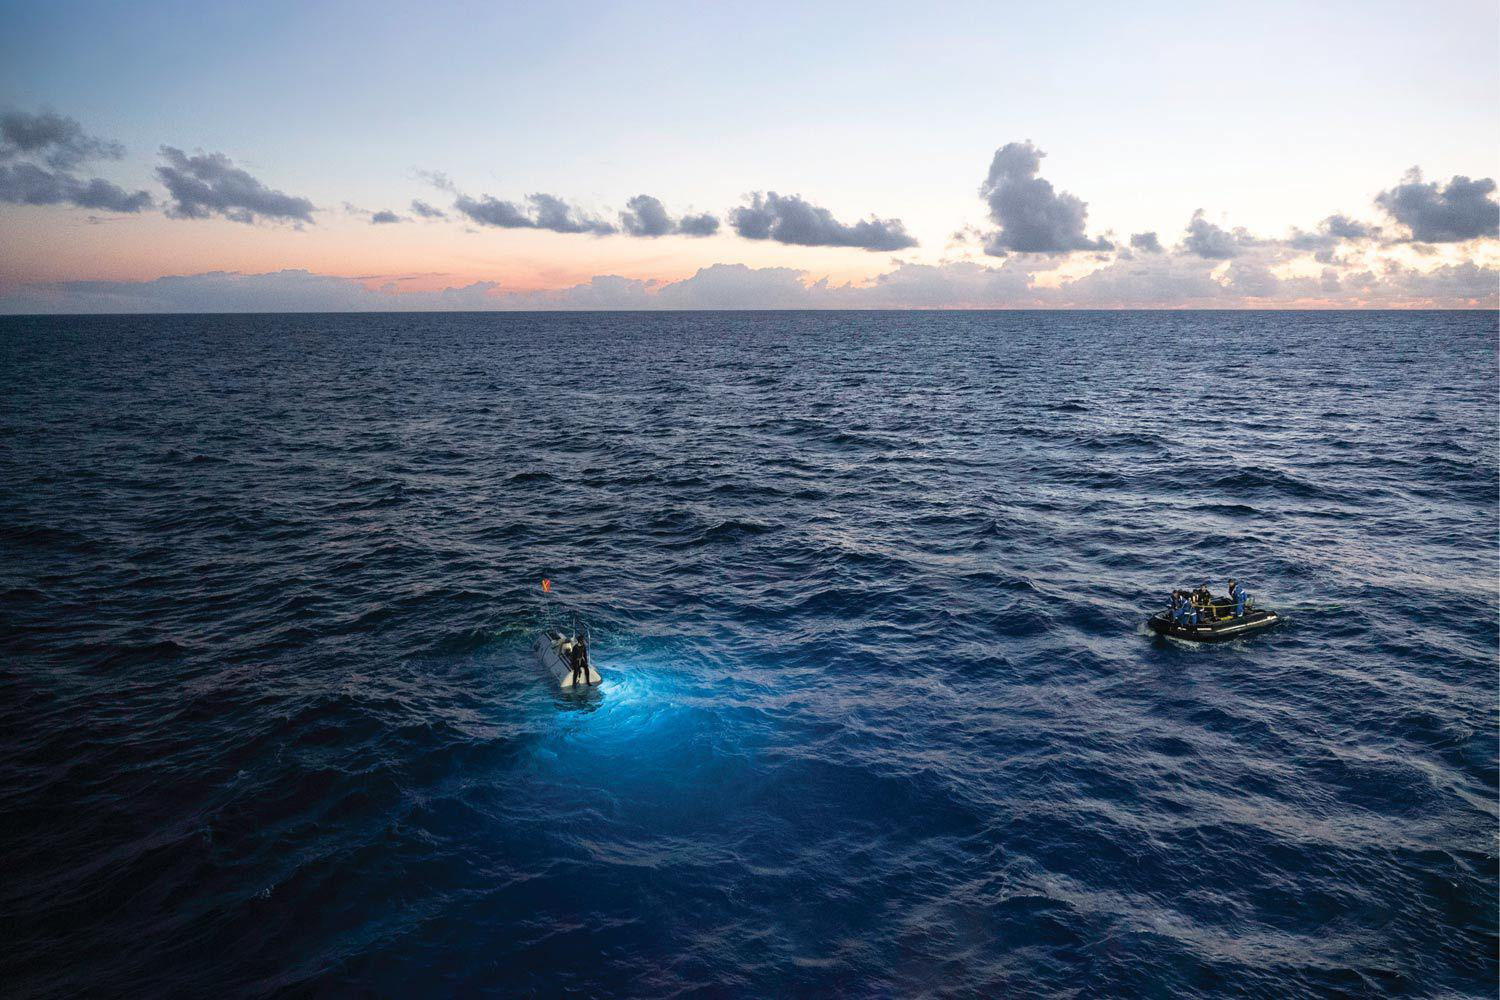 """""""We feel like we have just created, validated, and opened a powerful door to discover and visit any place, any time, in the ocean,"""" says Five Deeps' Vescovo."""